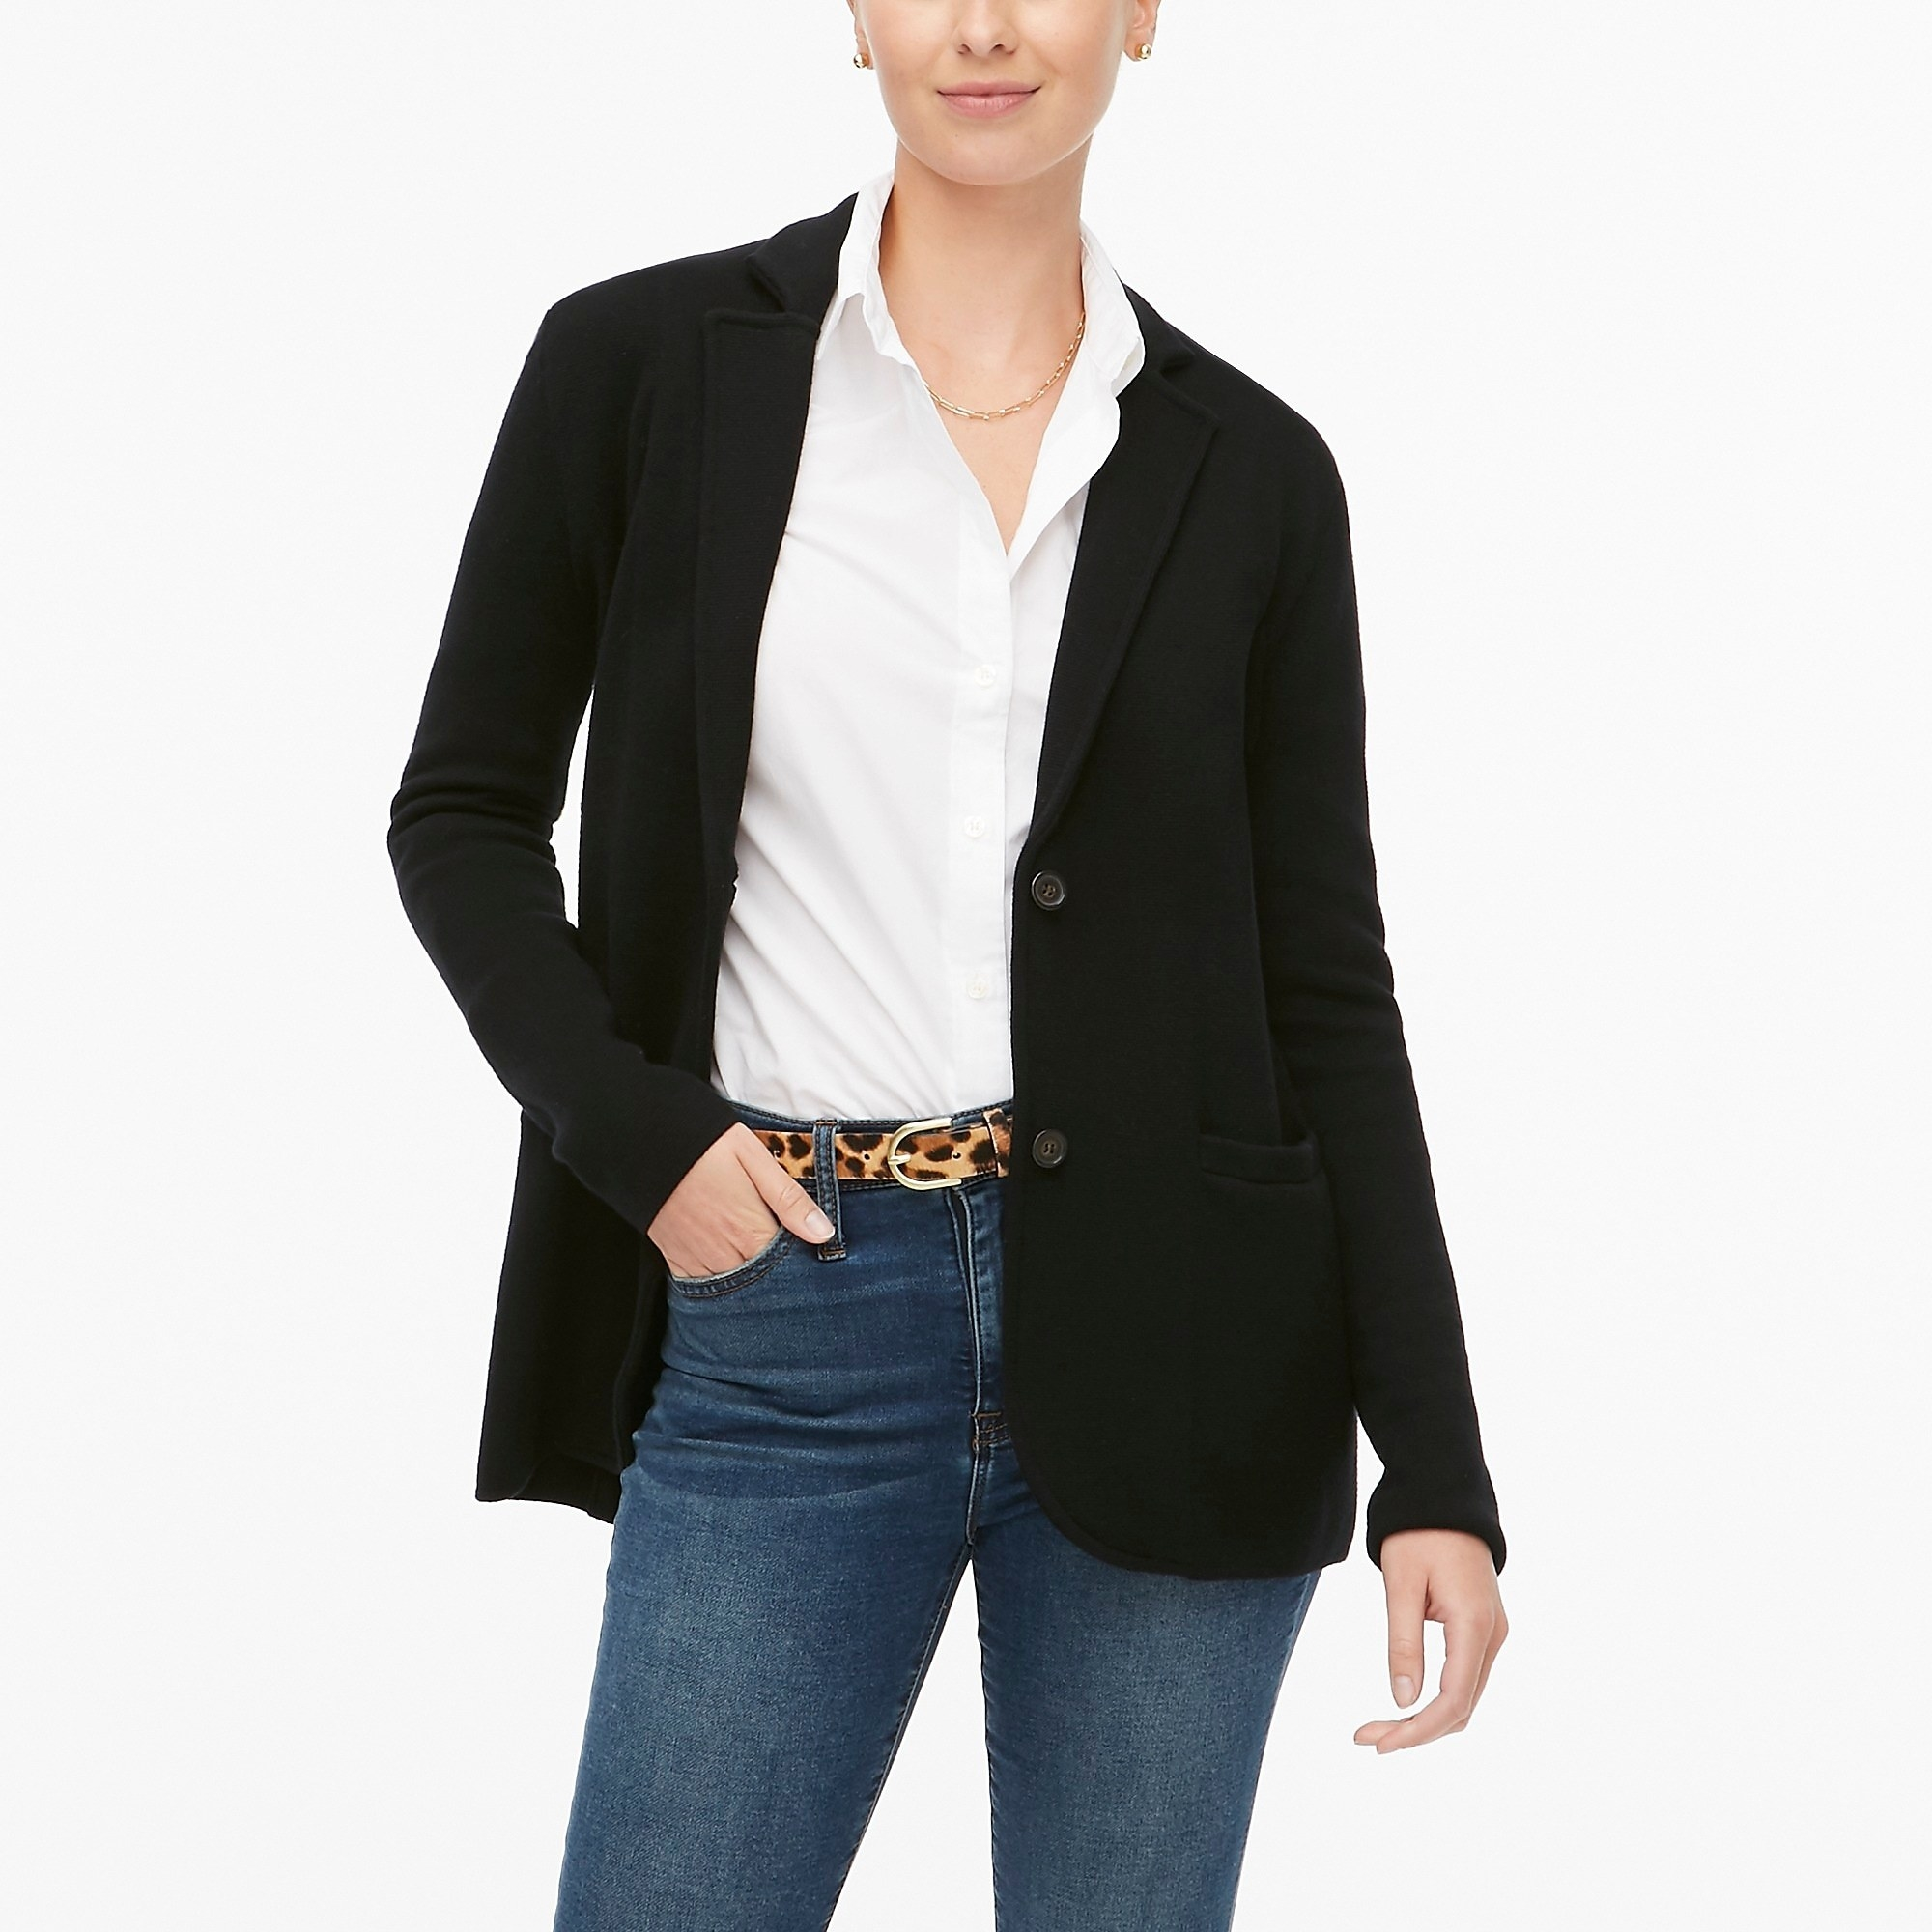 model wearing the black blazer with pockets and two buttons